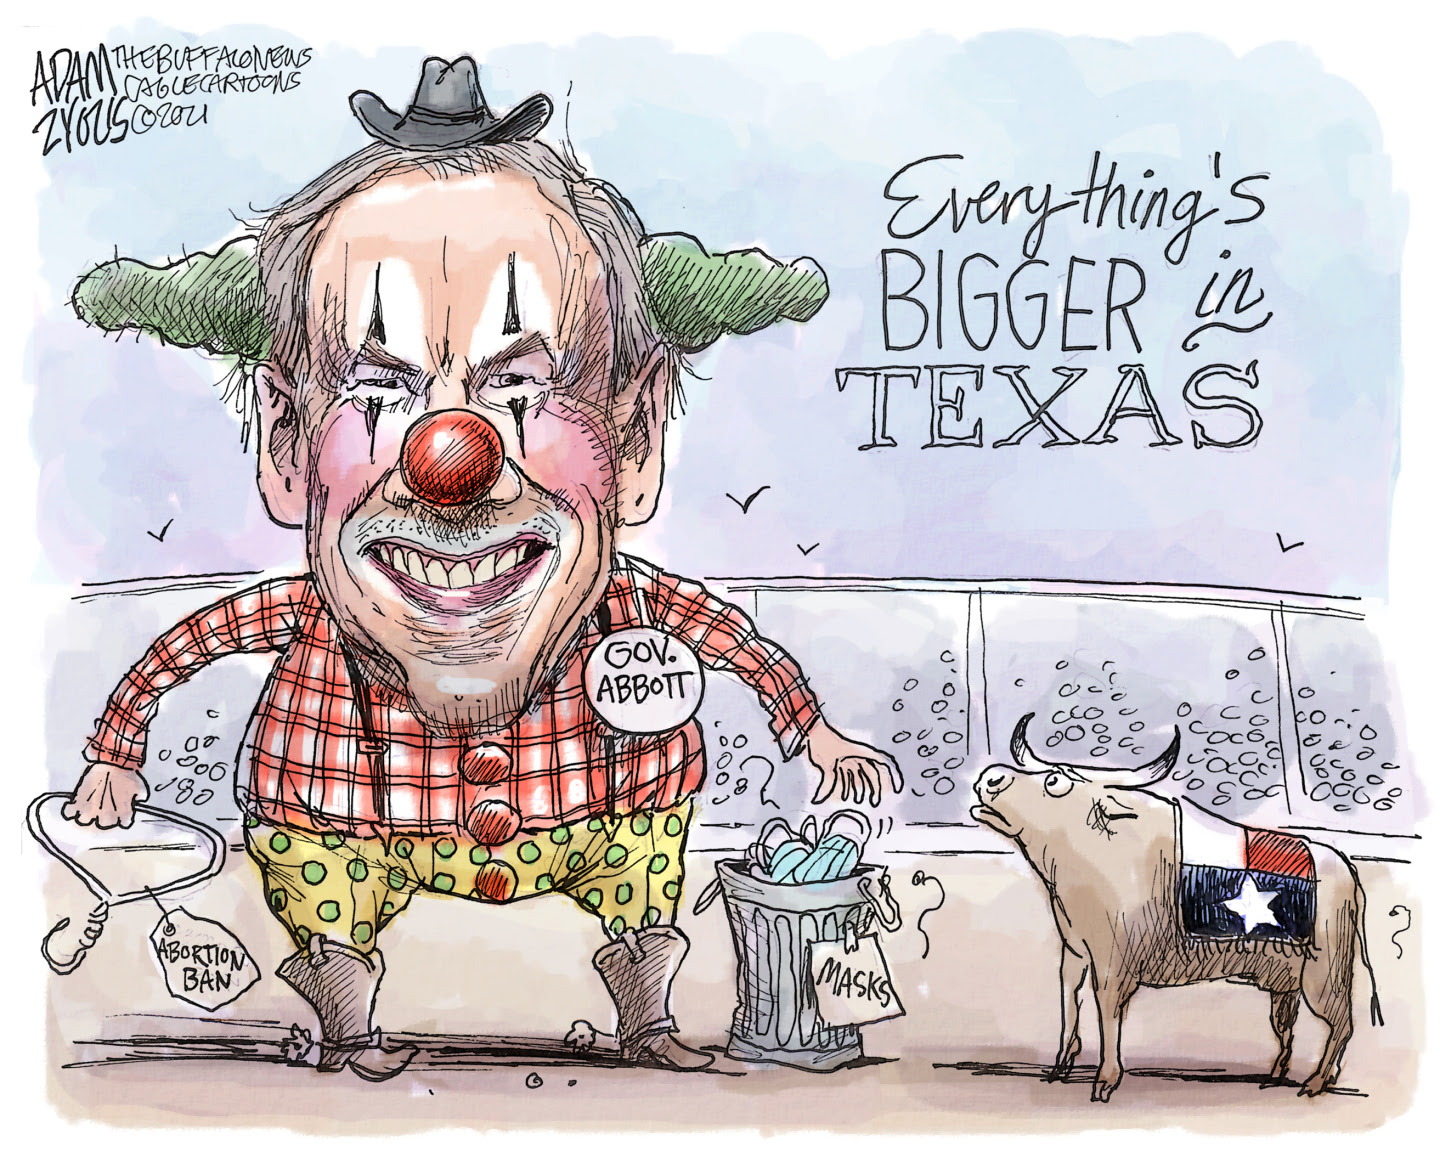 Greg Abbott ignores risks from COVID and focuses on the abortion ban and bounties to vigilantes.